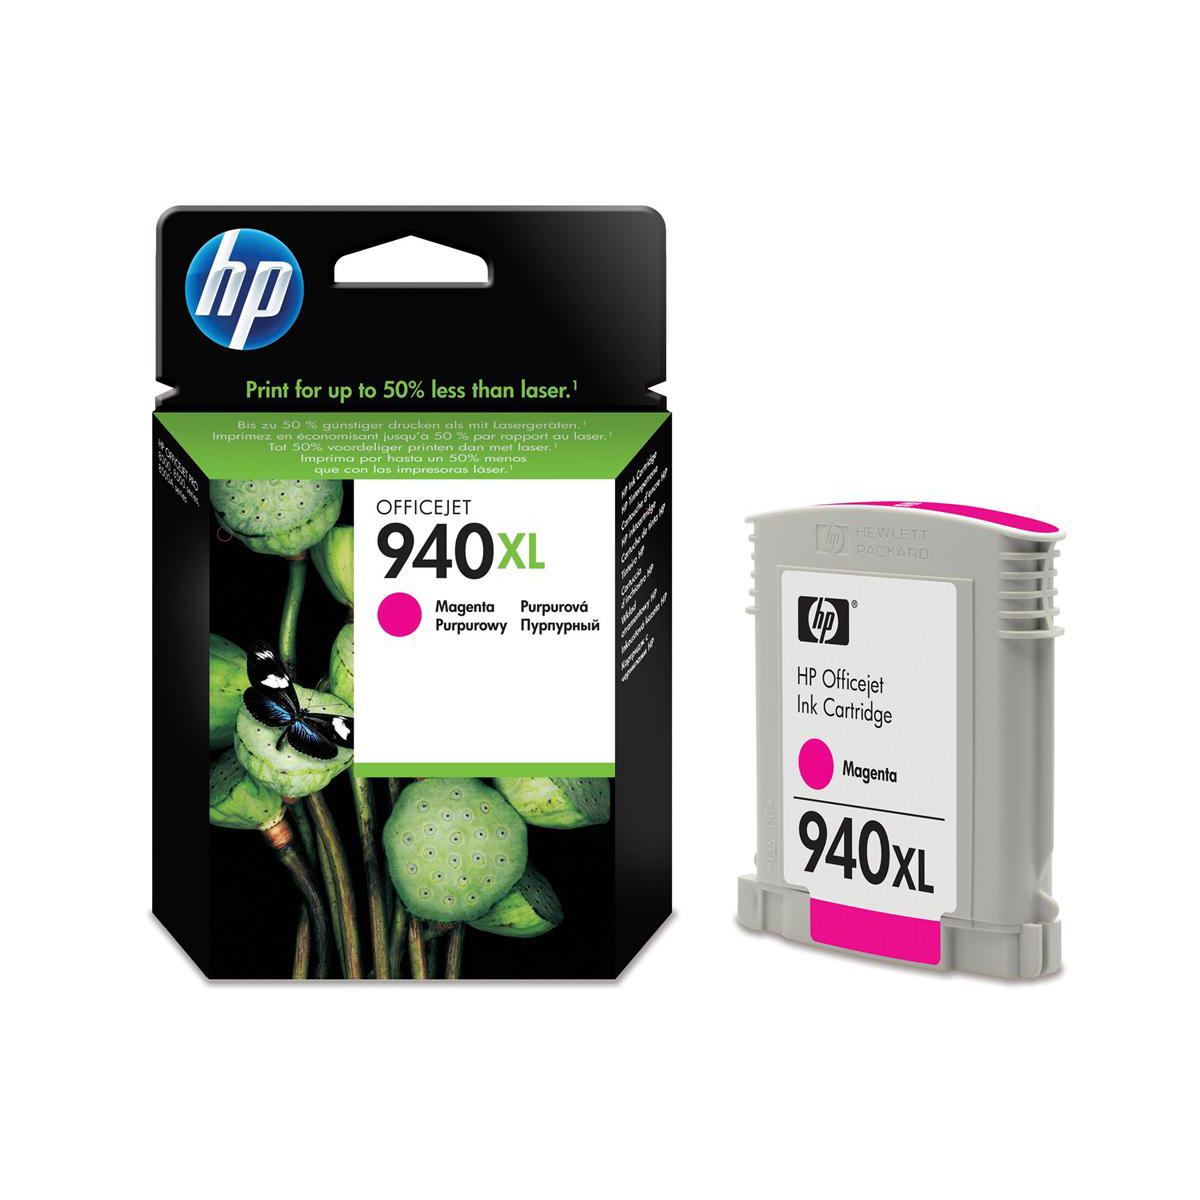 Hewlett Packard [HP] No.940XL Inkjet Cartridge High Yield Page Life 1400pp 16ml Magenta Ref C4908AE